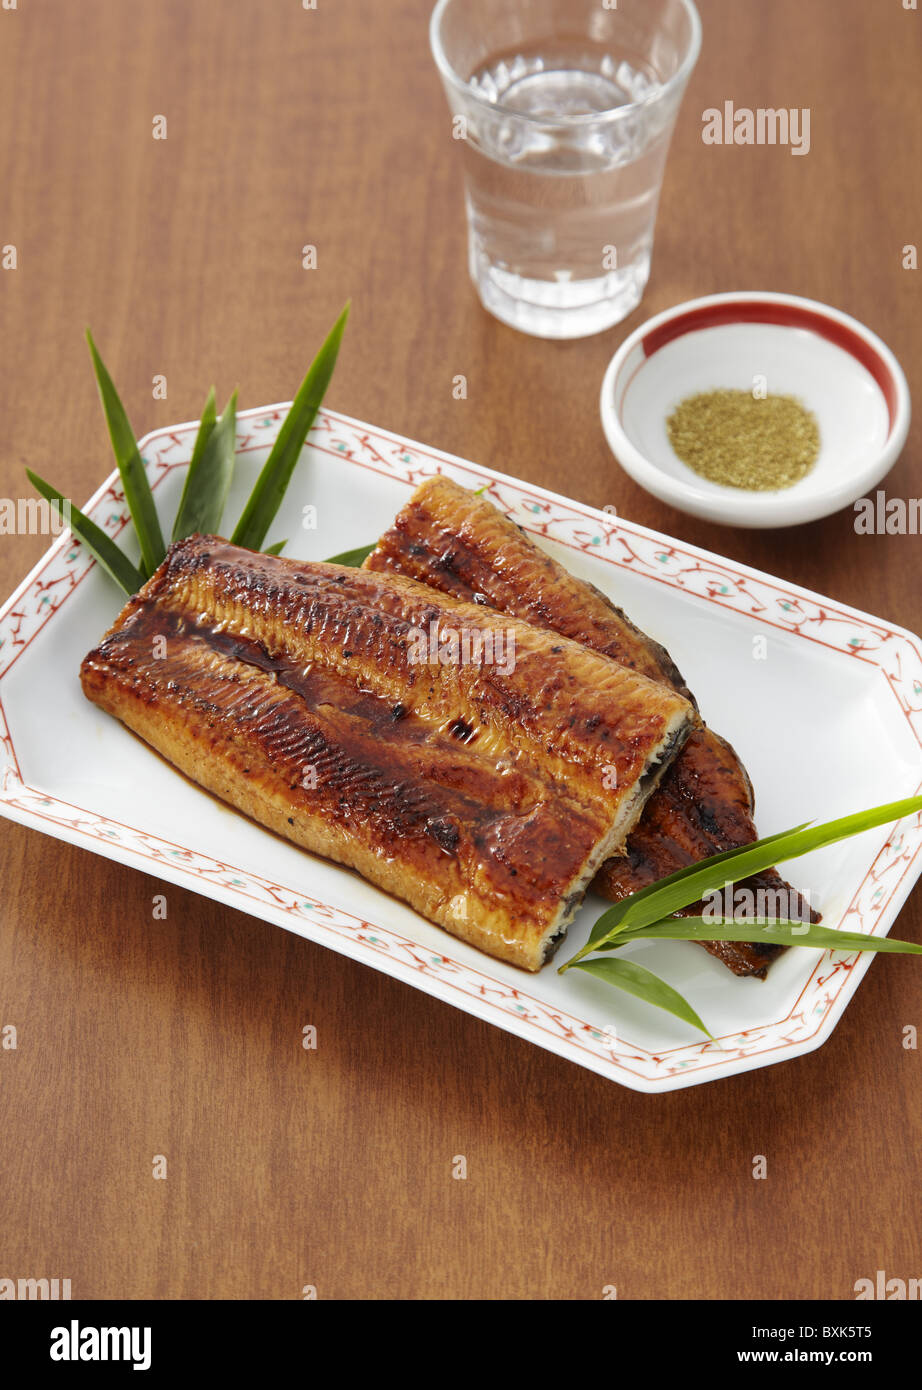 Broiled Eel Dipped In A Sweet Soy Sauce Base Sauce Stock Photo